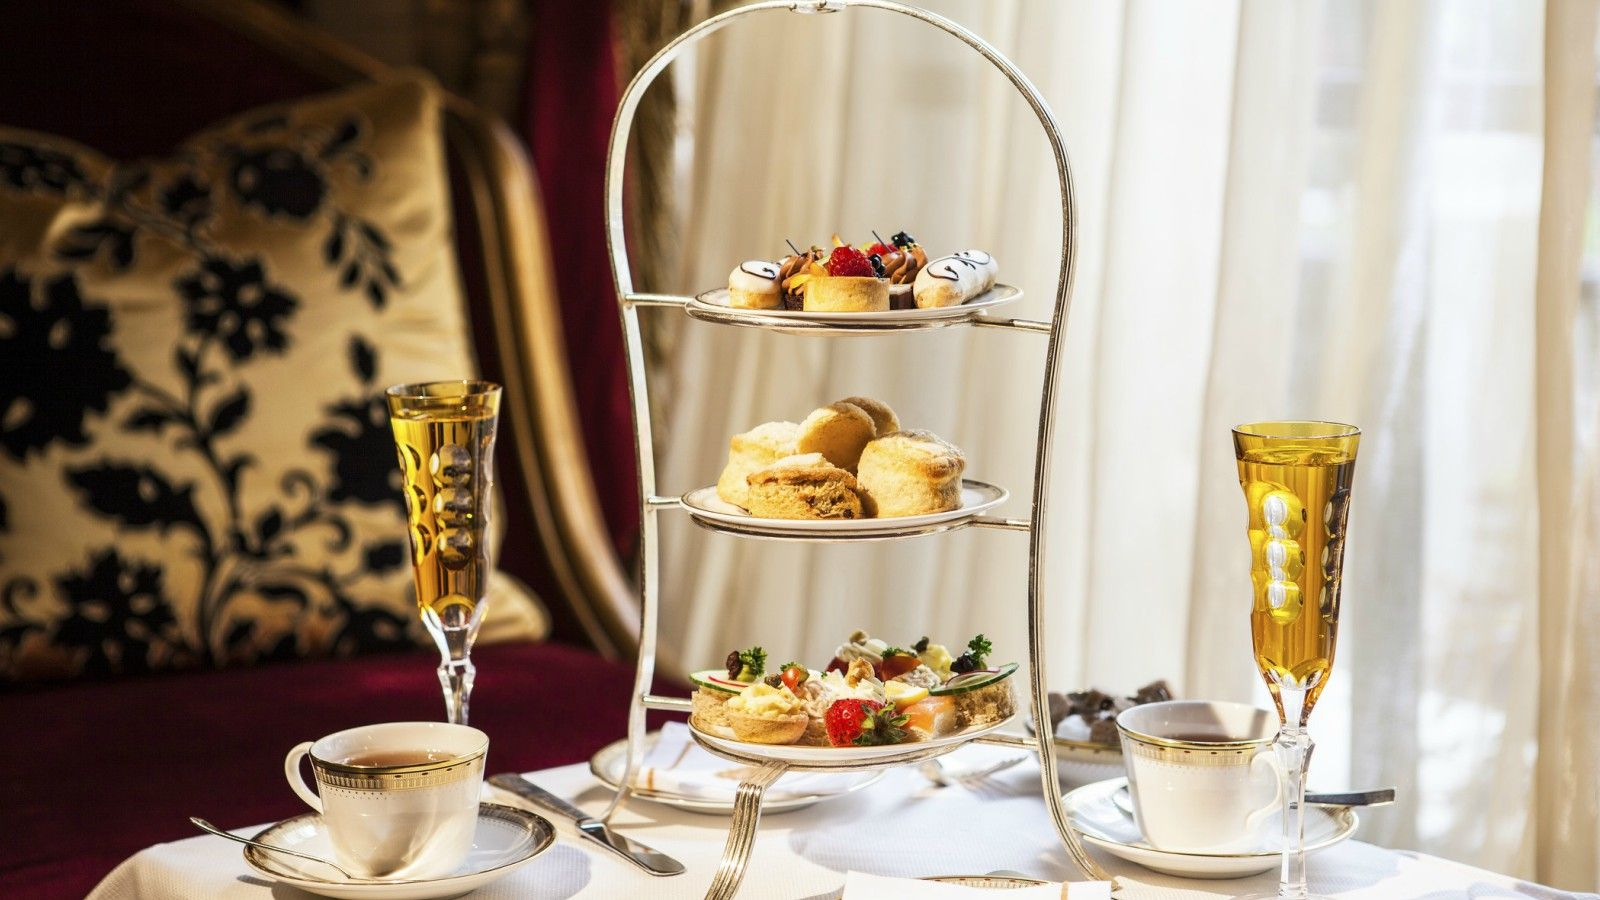 St. Regis Washington, D.C. | Afternoon Tea